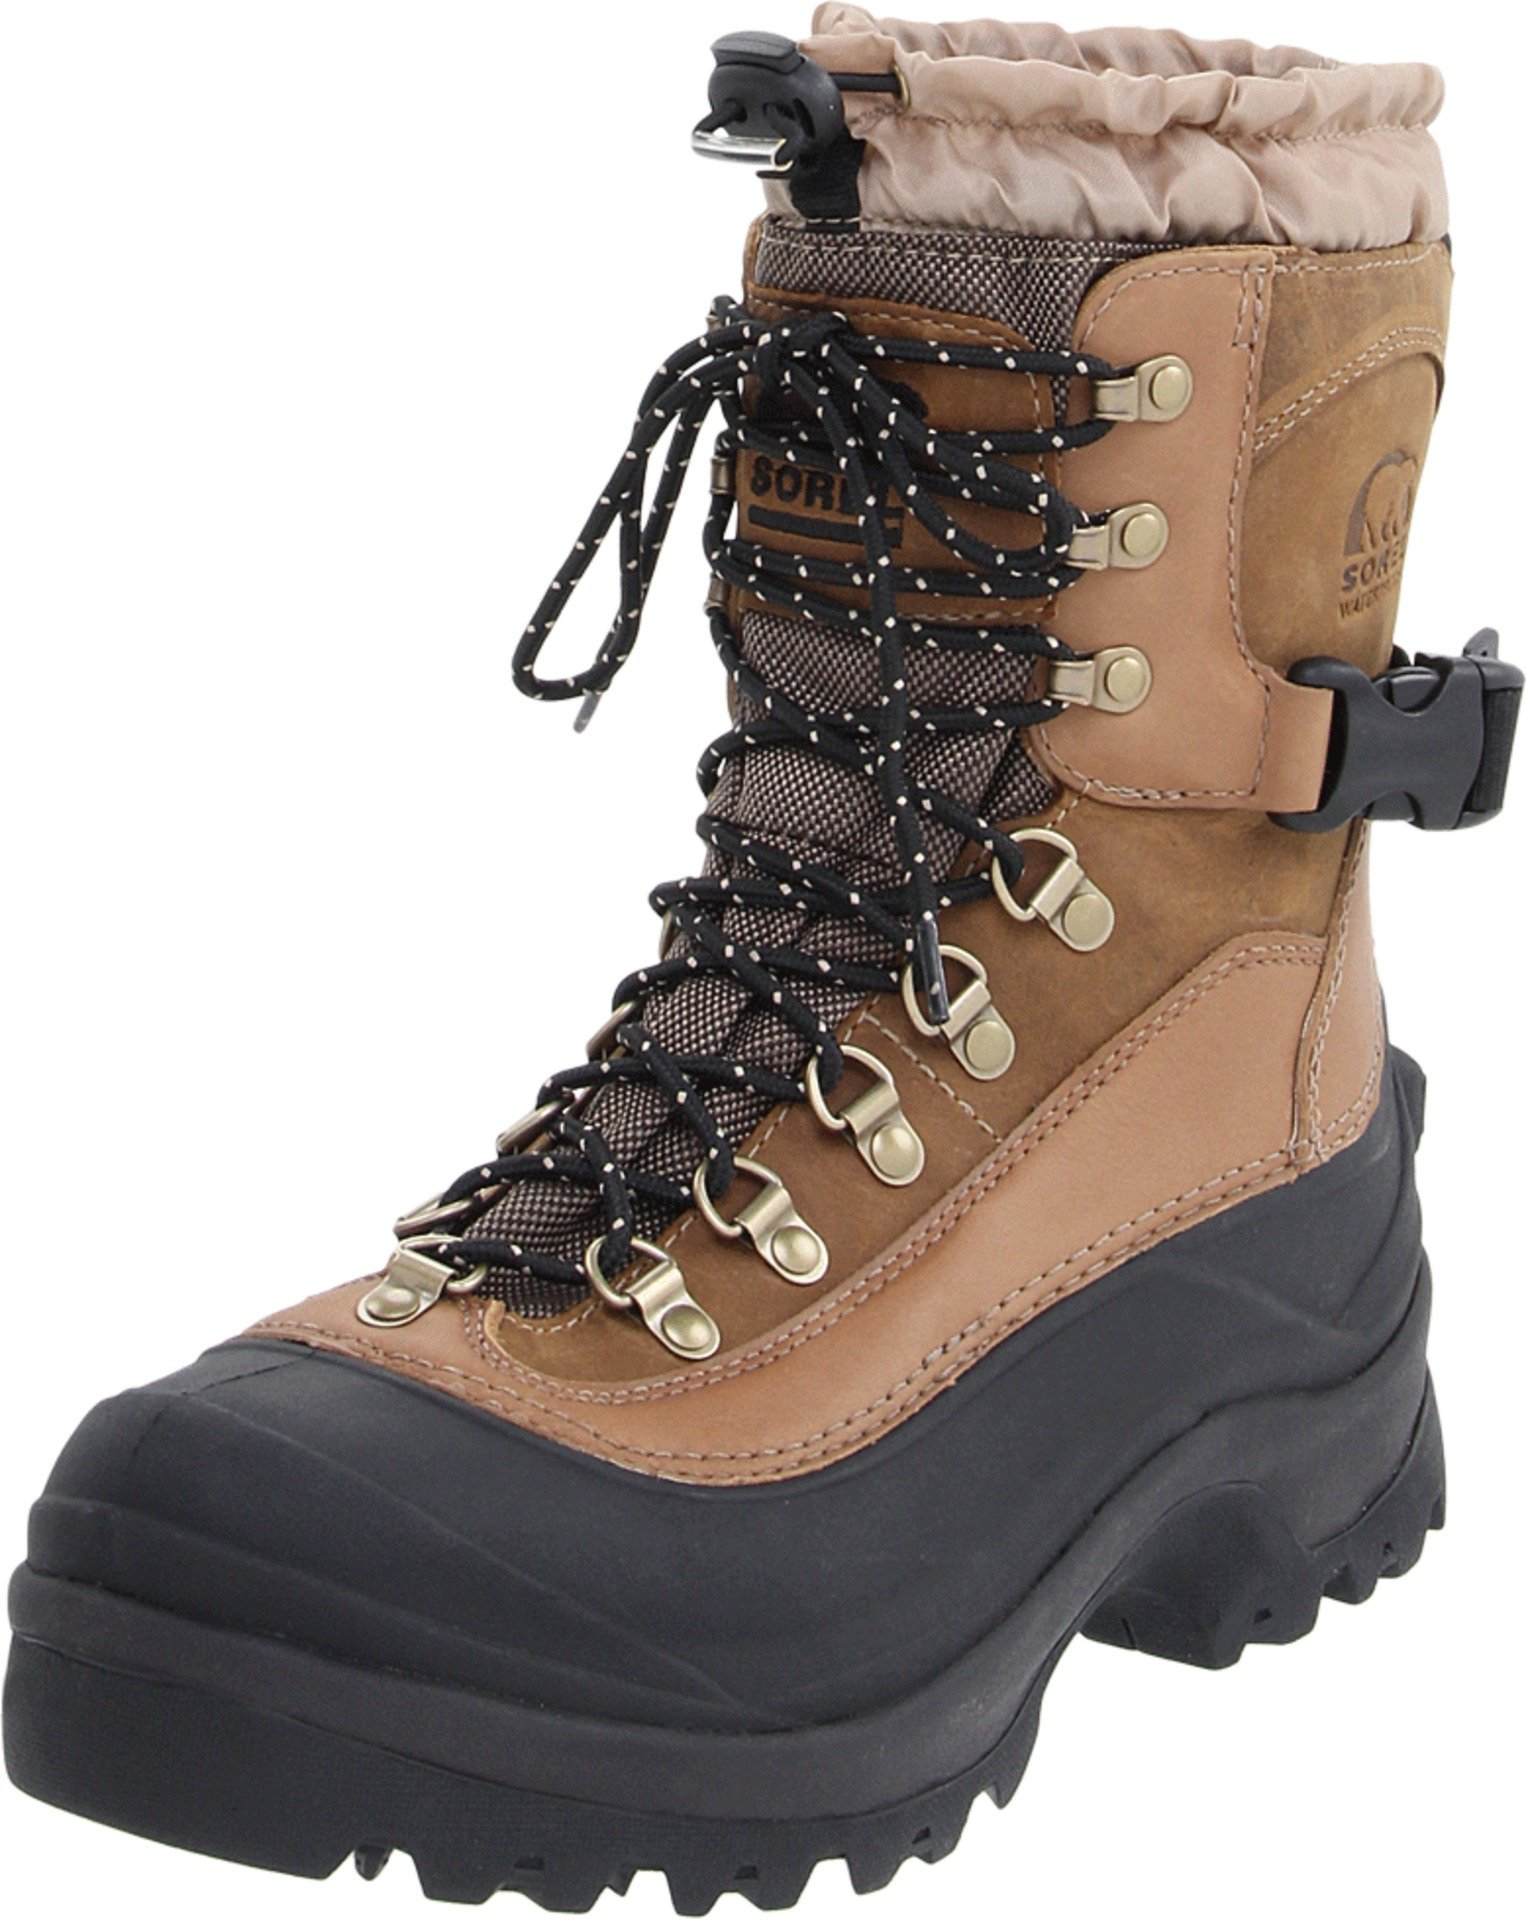 Sorel Men's Conquest waterproof winter boots